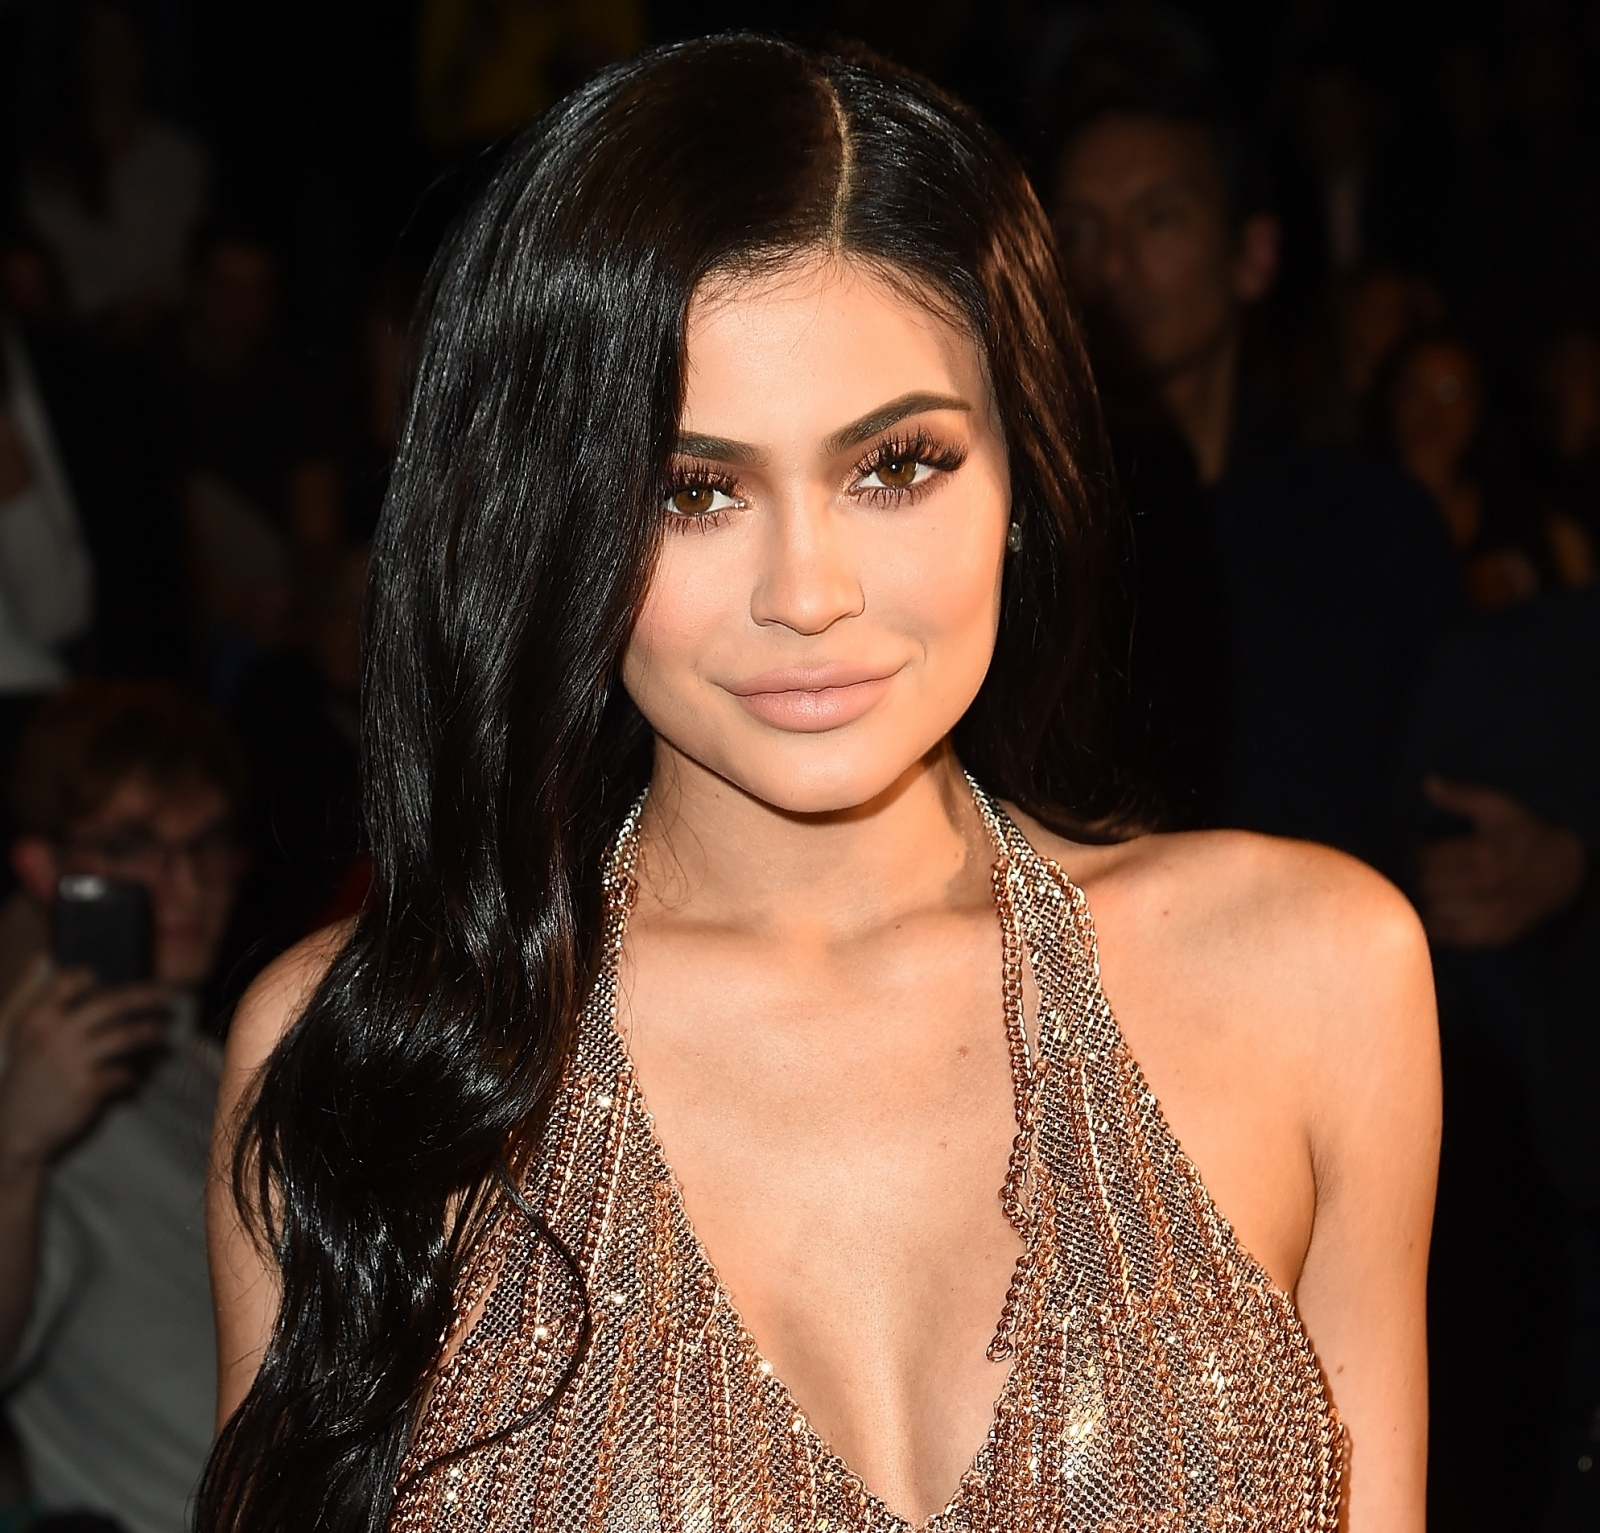 Kylie Jenner slammed for claiming she 'didn't choose this life' in Life of Kylie